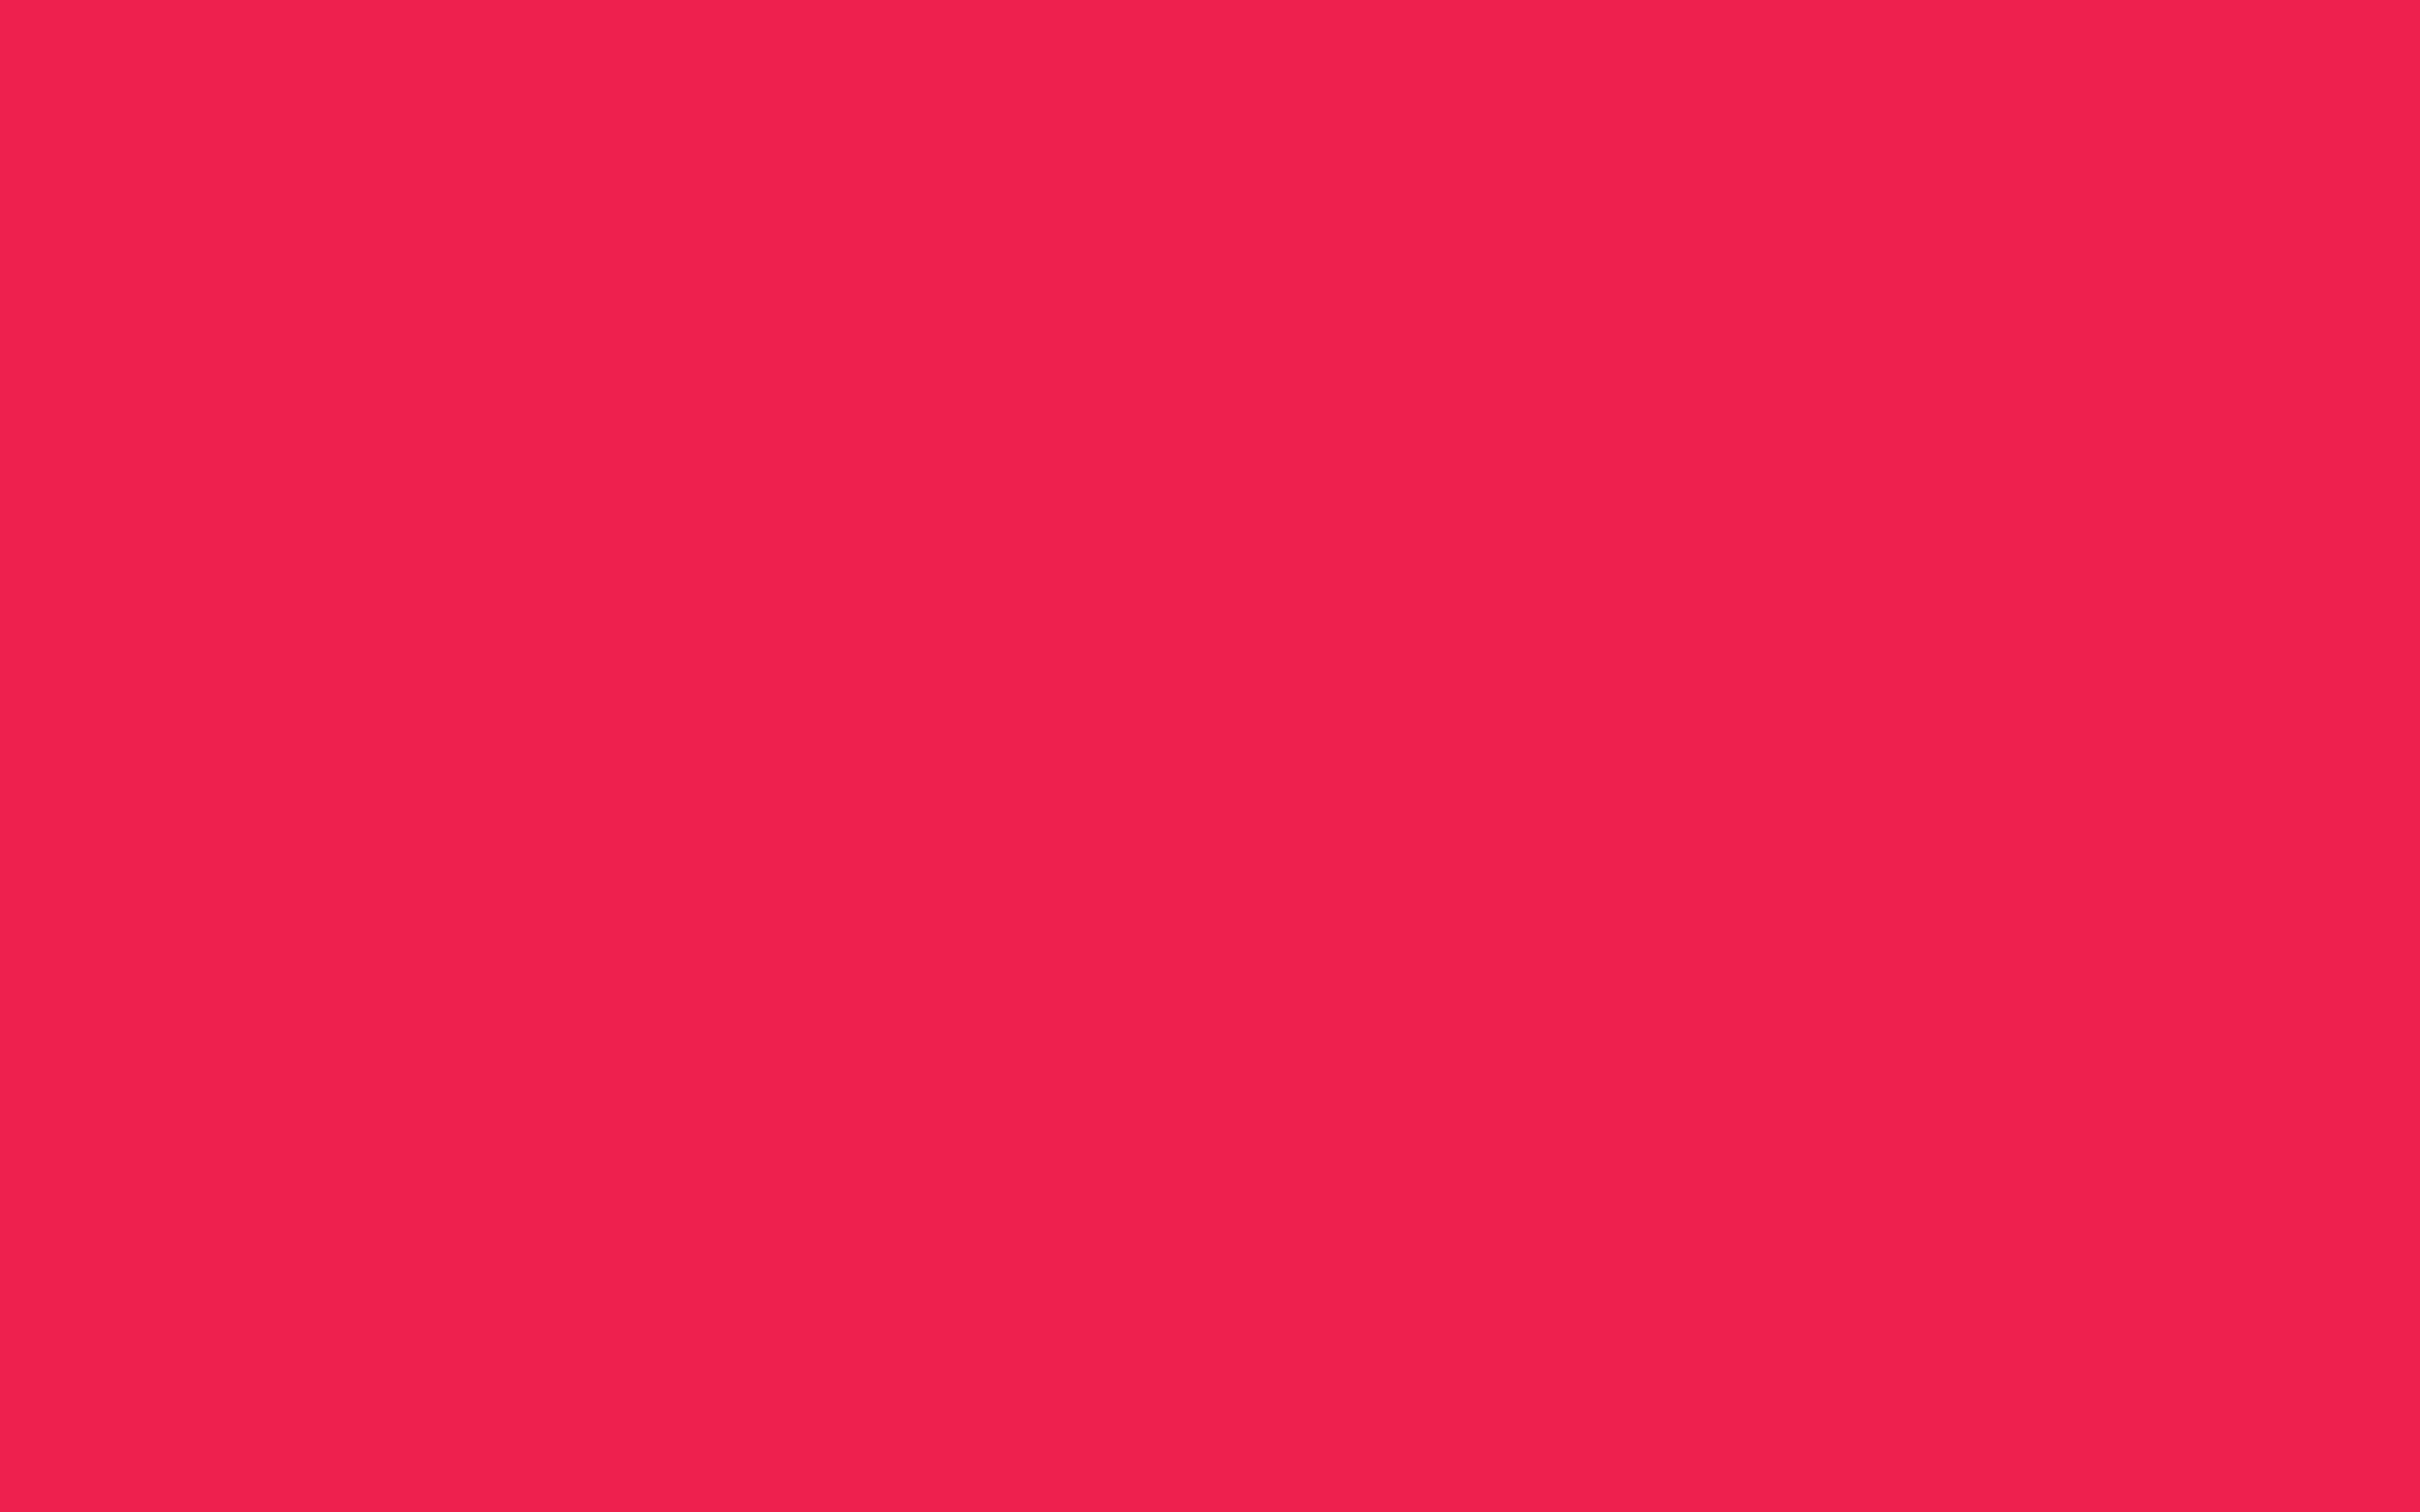 2560x1600 Red Crayola Solid Color Background